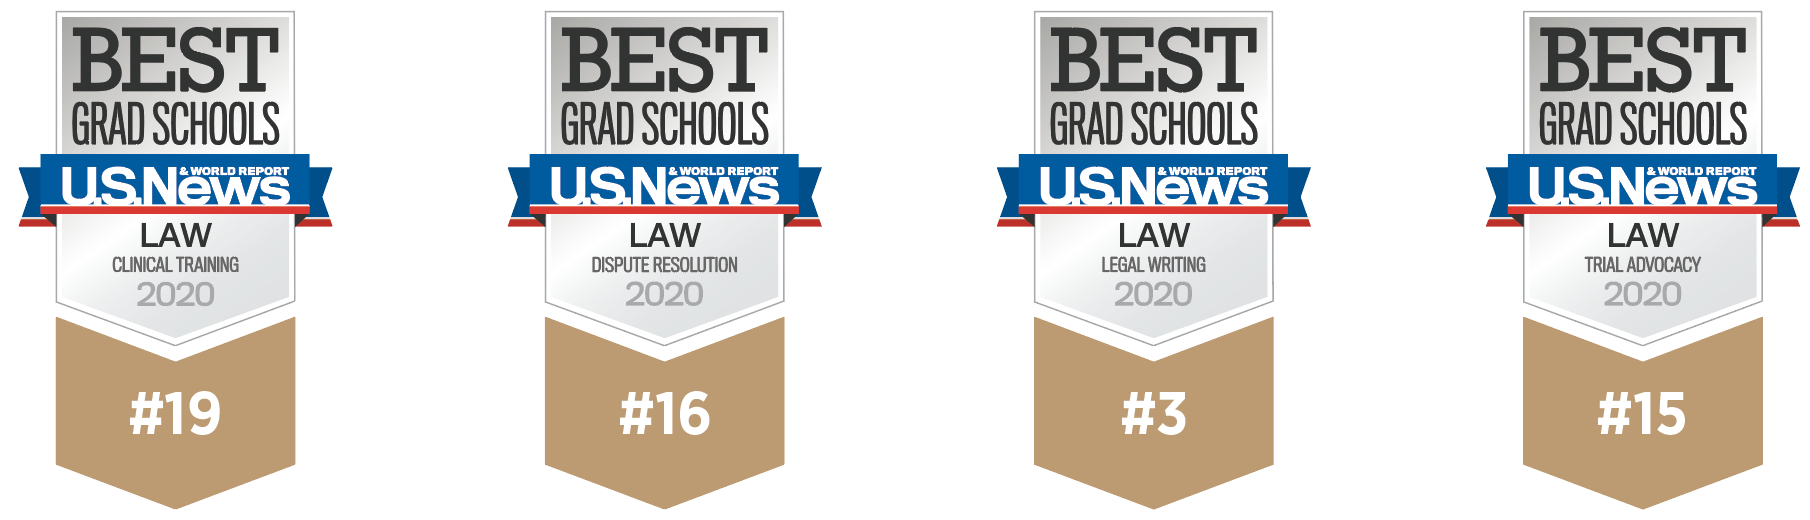 US News & World rankings badges showing Suffolk Law accomplishments